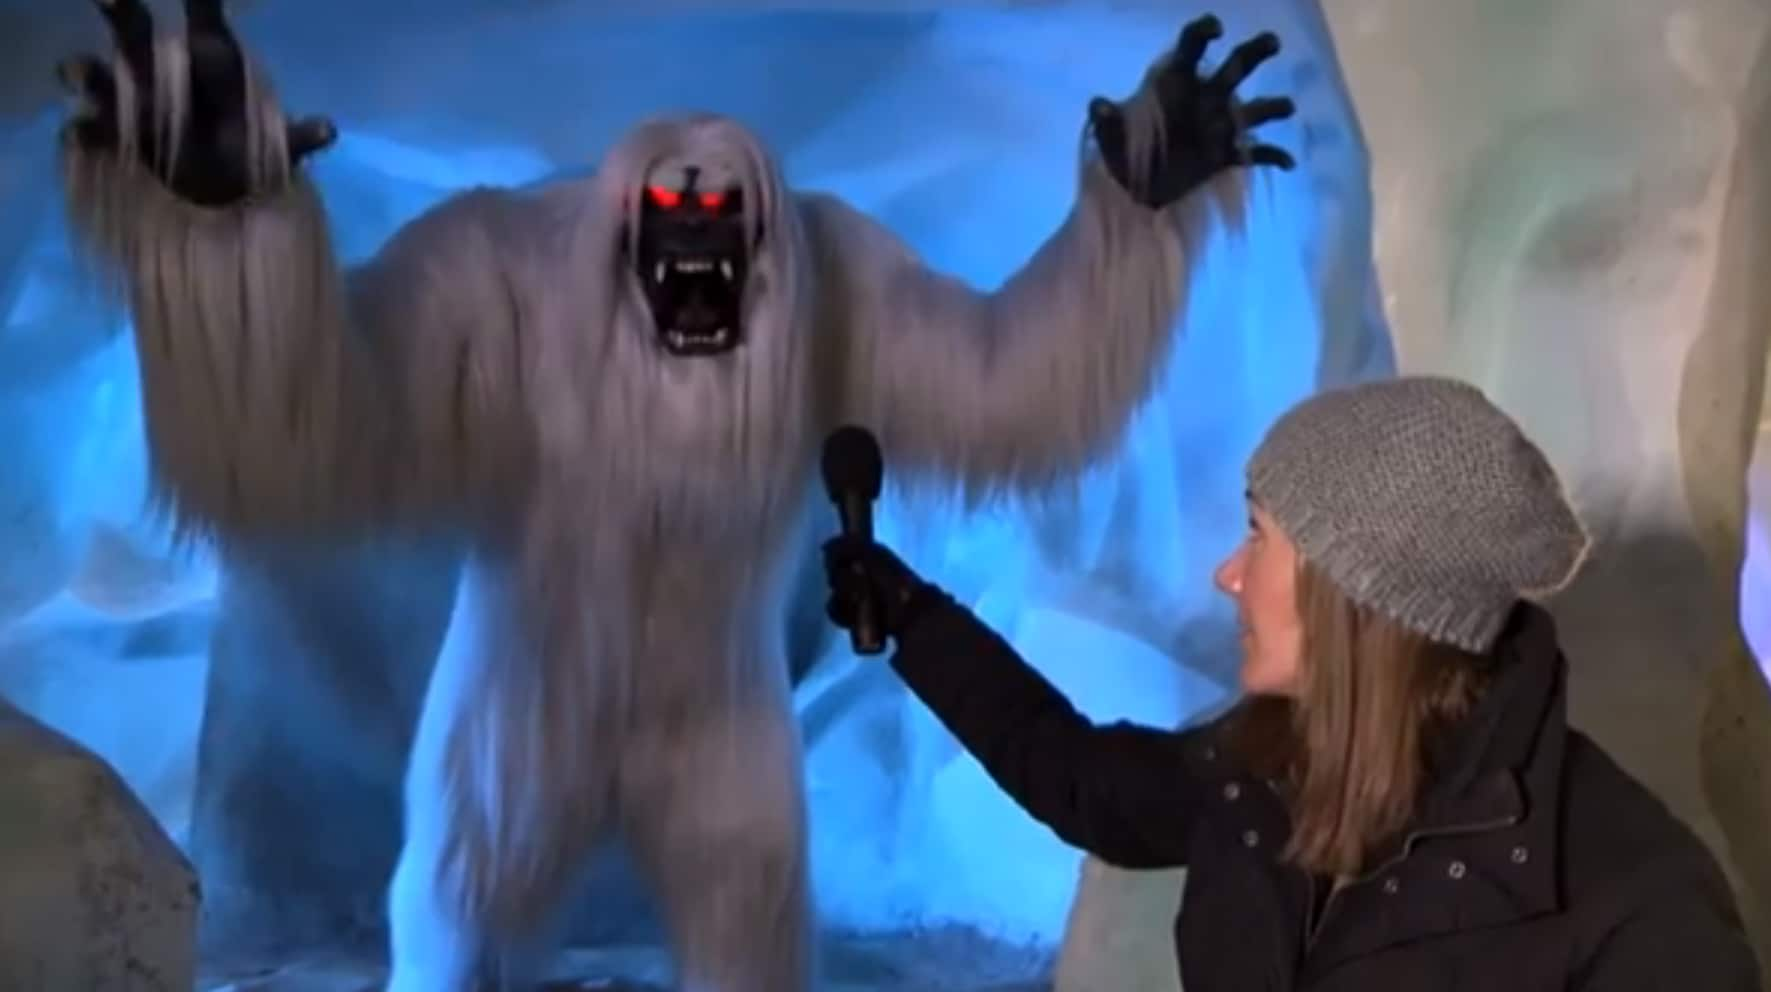 Exclusive Interview With The Abominable Snowman From Inside The